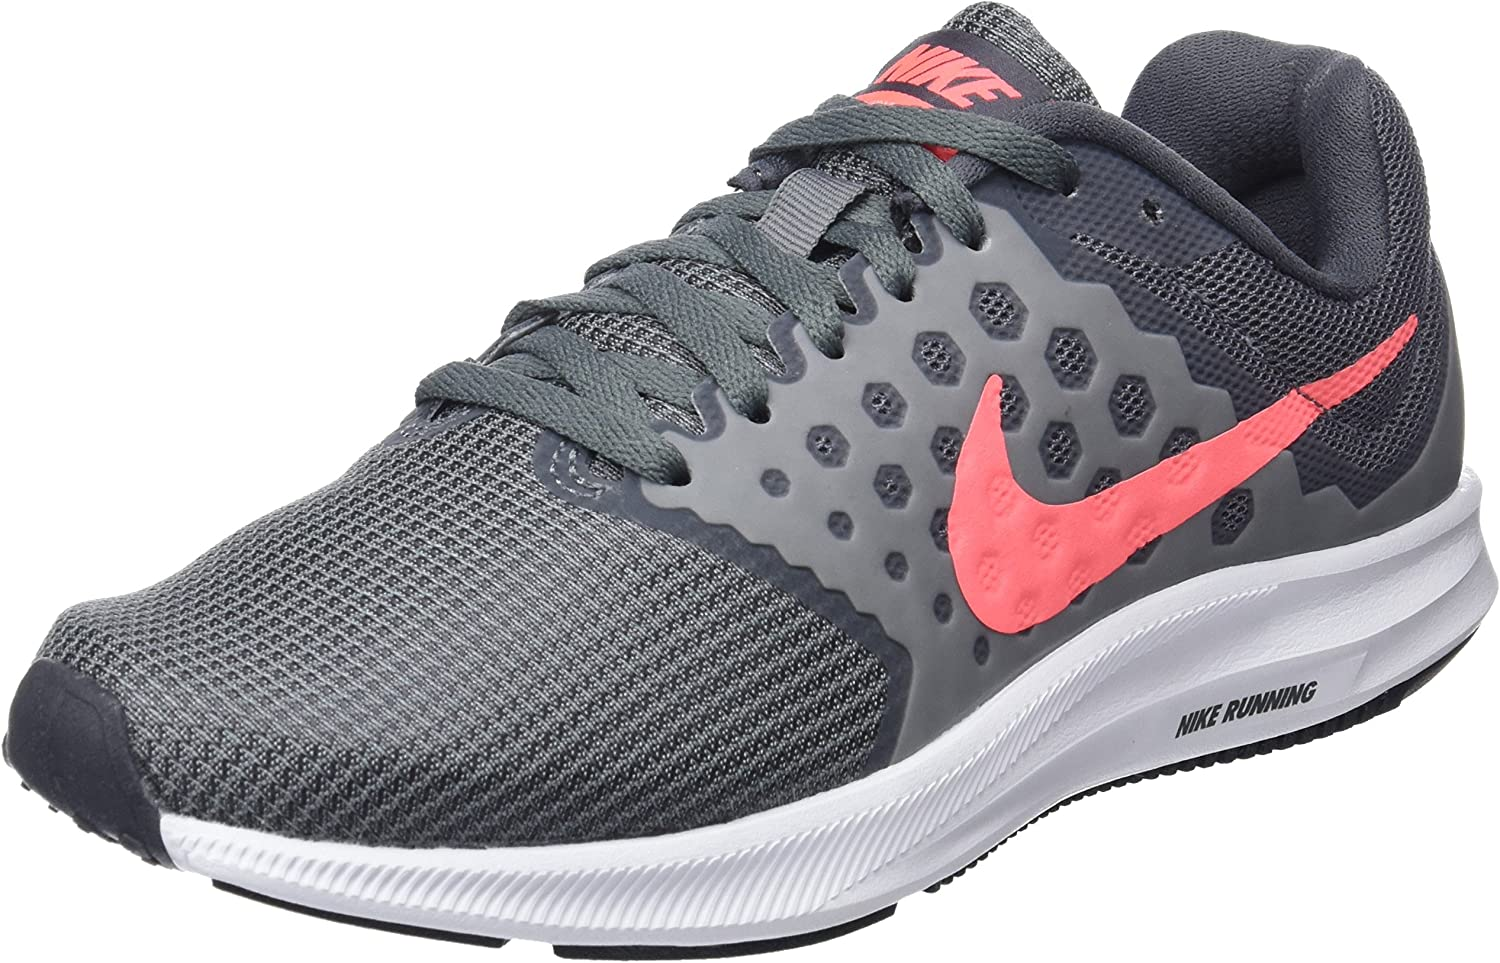 Nike Wmns Downshifter 7 Wide, Zapatillas para Mujer, Gris (Cool ...